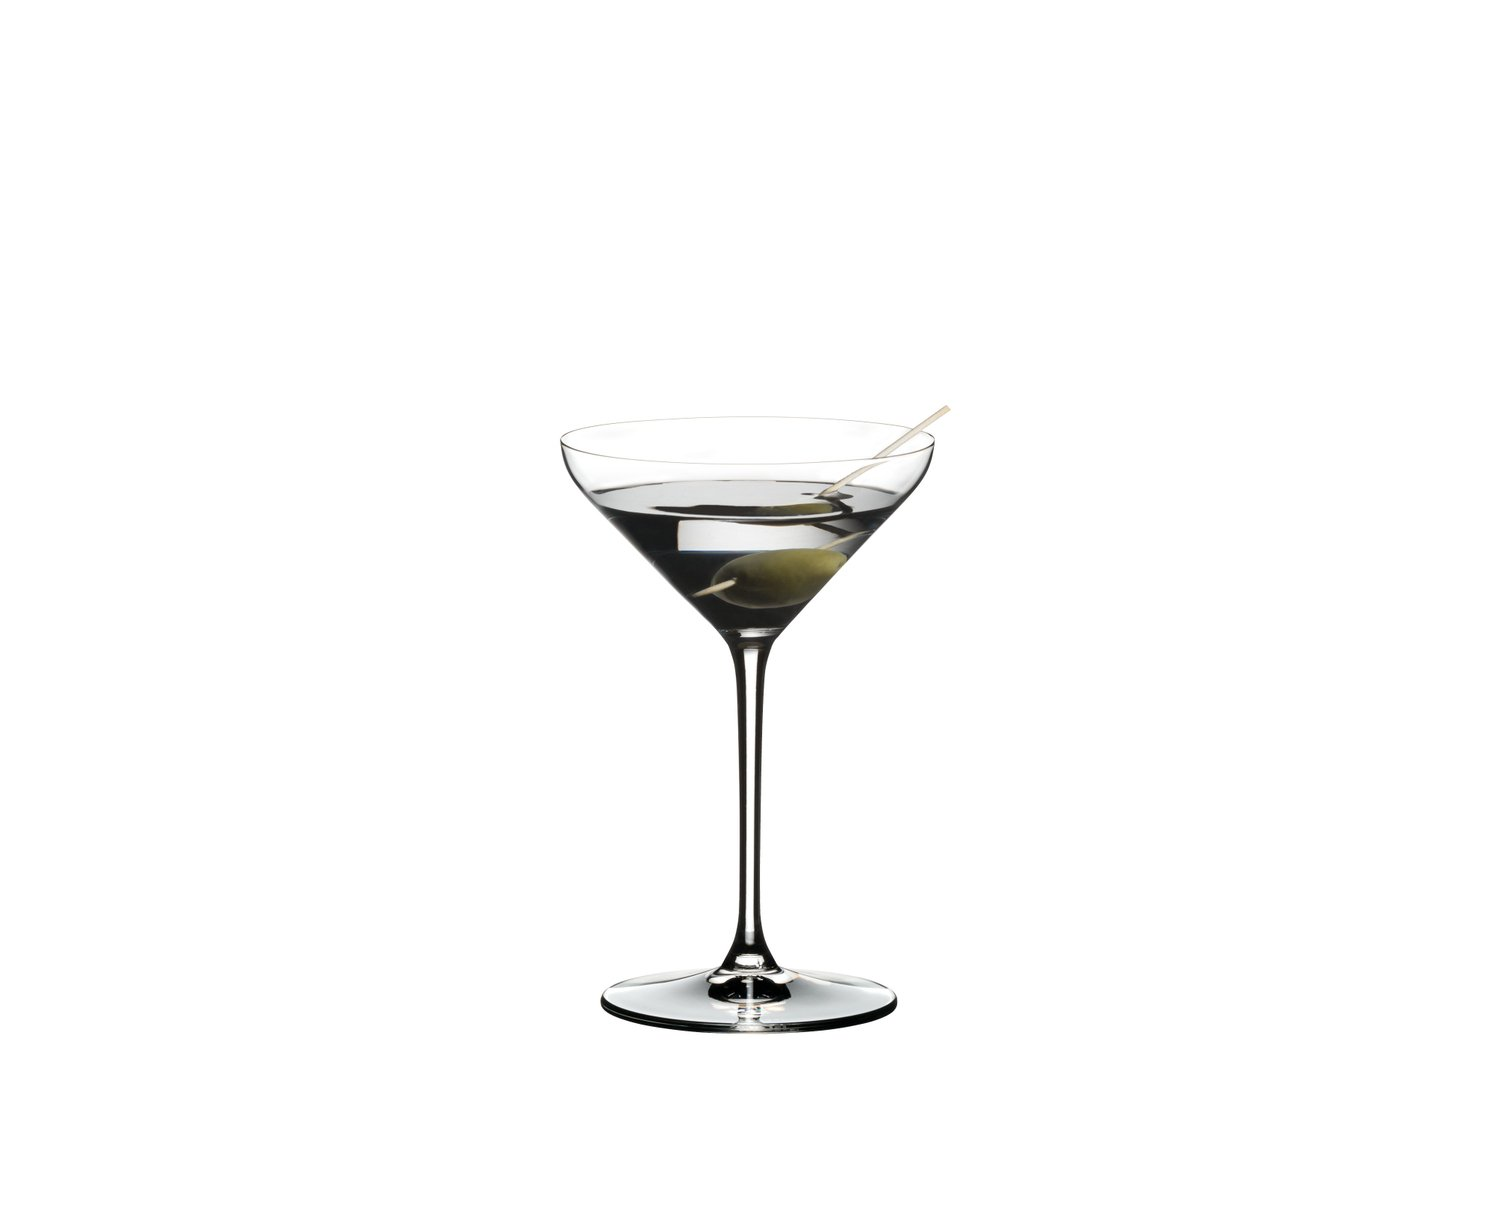 Riedel Extreme Crystal Martini Cocktail Glass, Set of 2